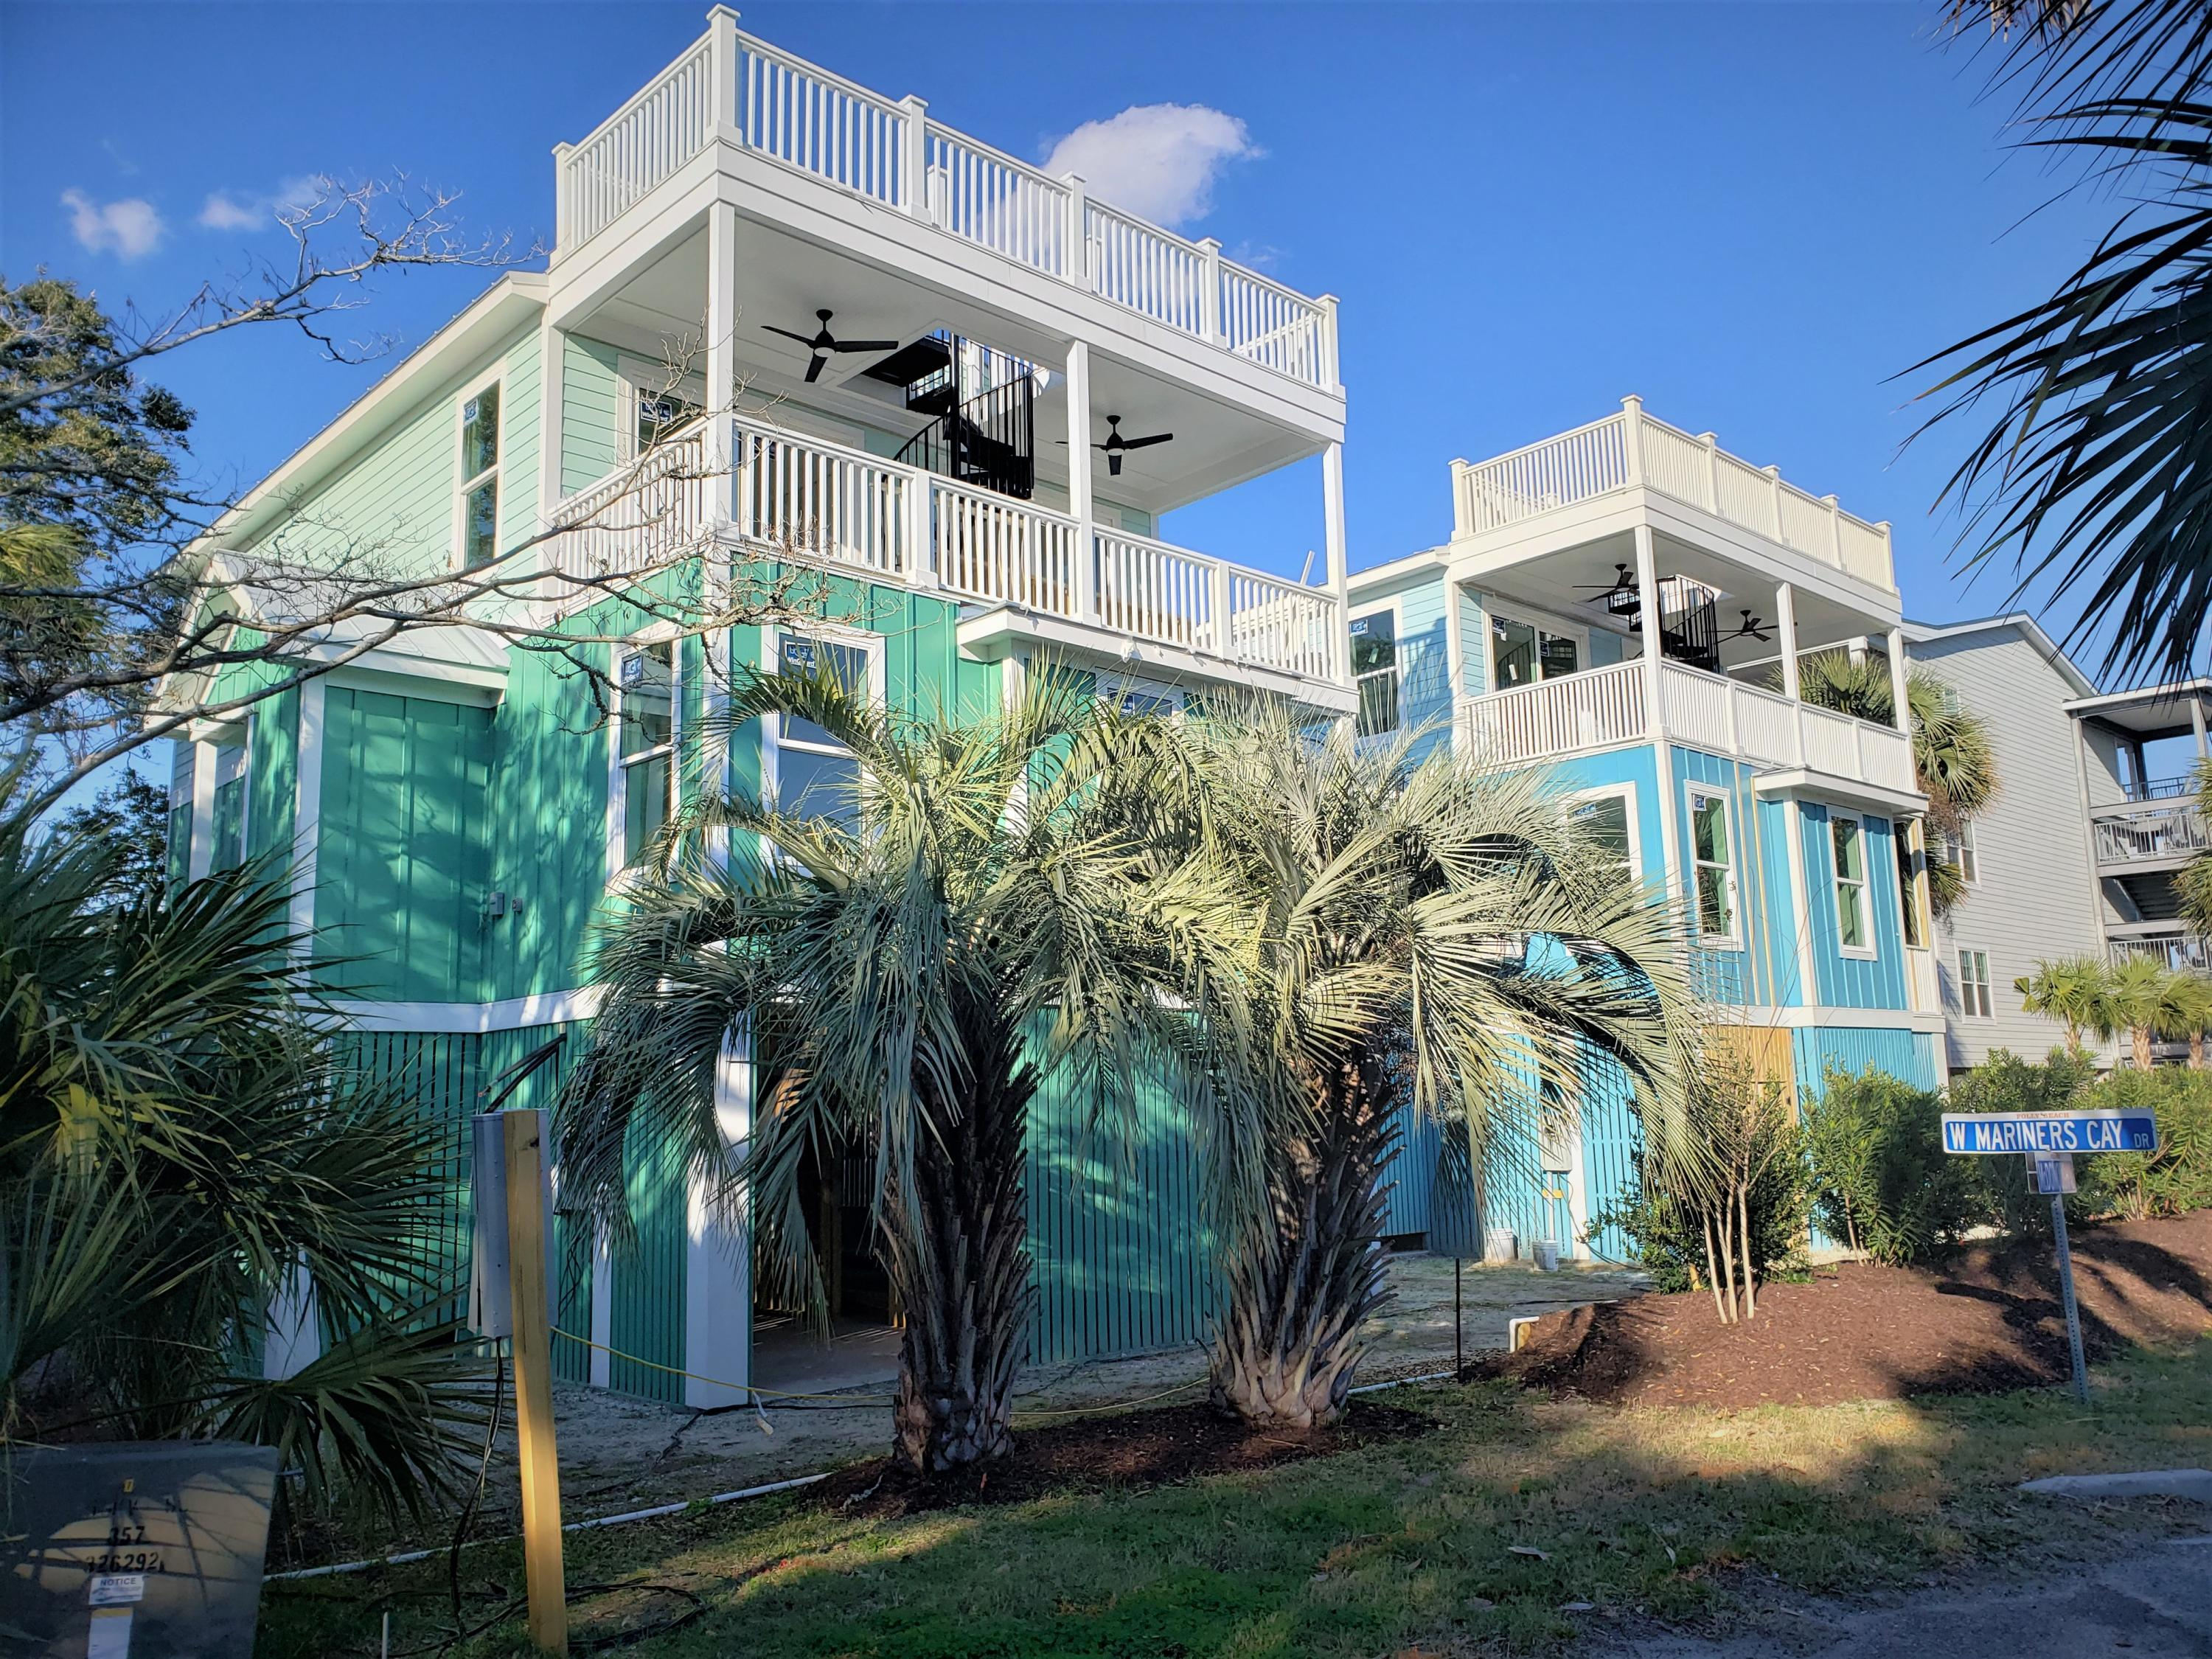 Mariners Cay Homes For Sale - 1004 Mariners Cay, Folly Beach, SC - 57